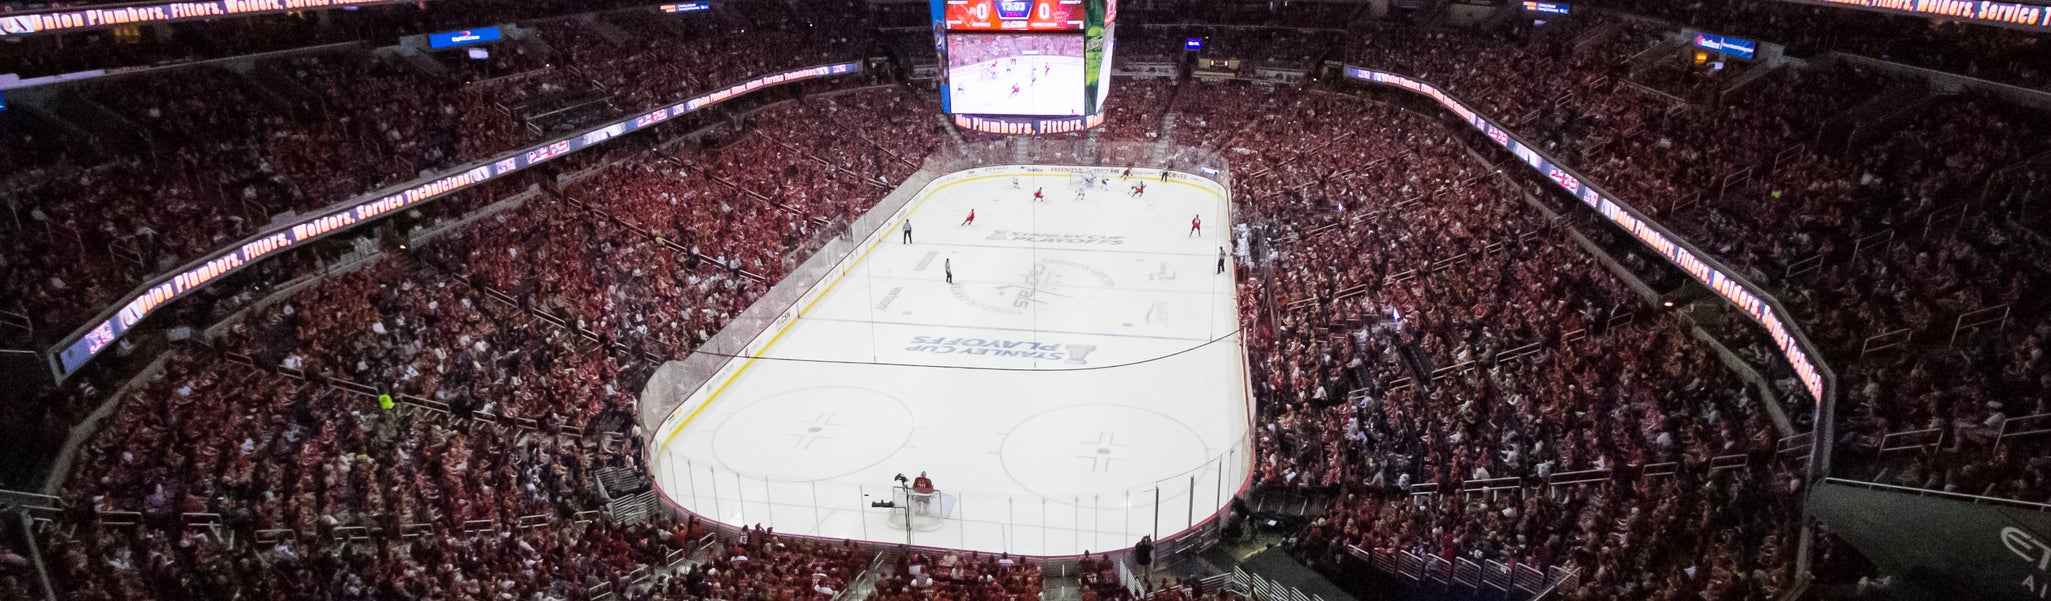 Seat view from Mezzanine End 426 at Capital One Arena